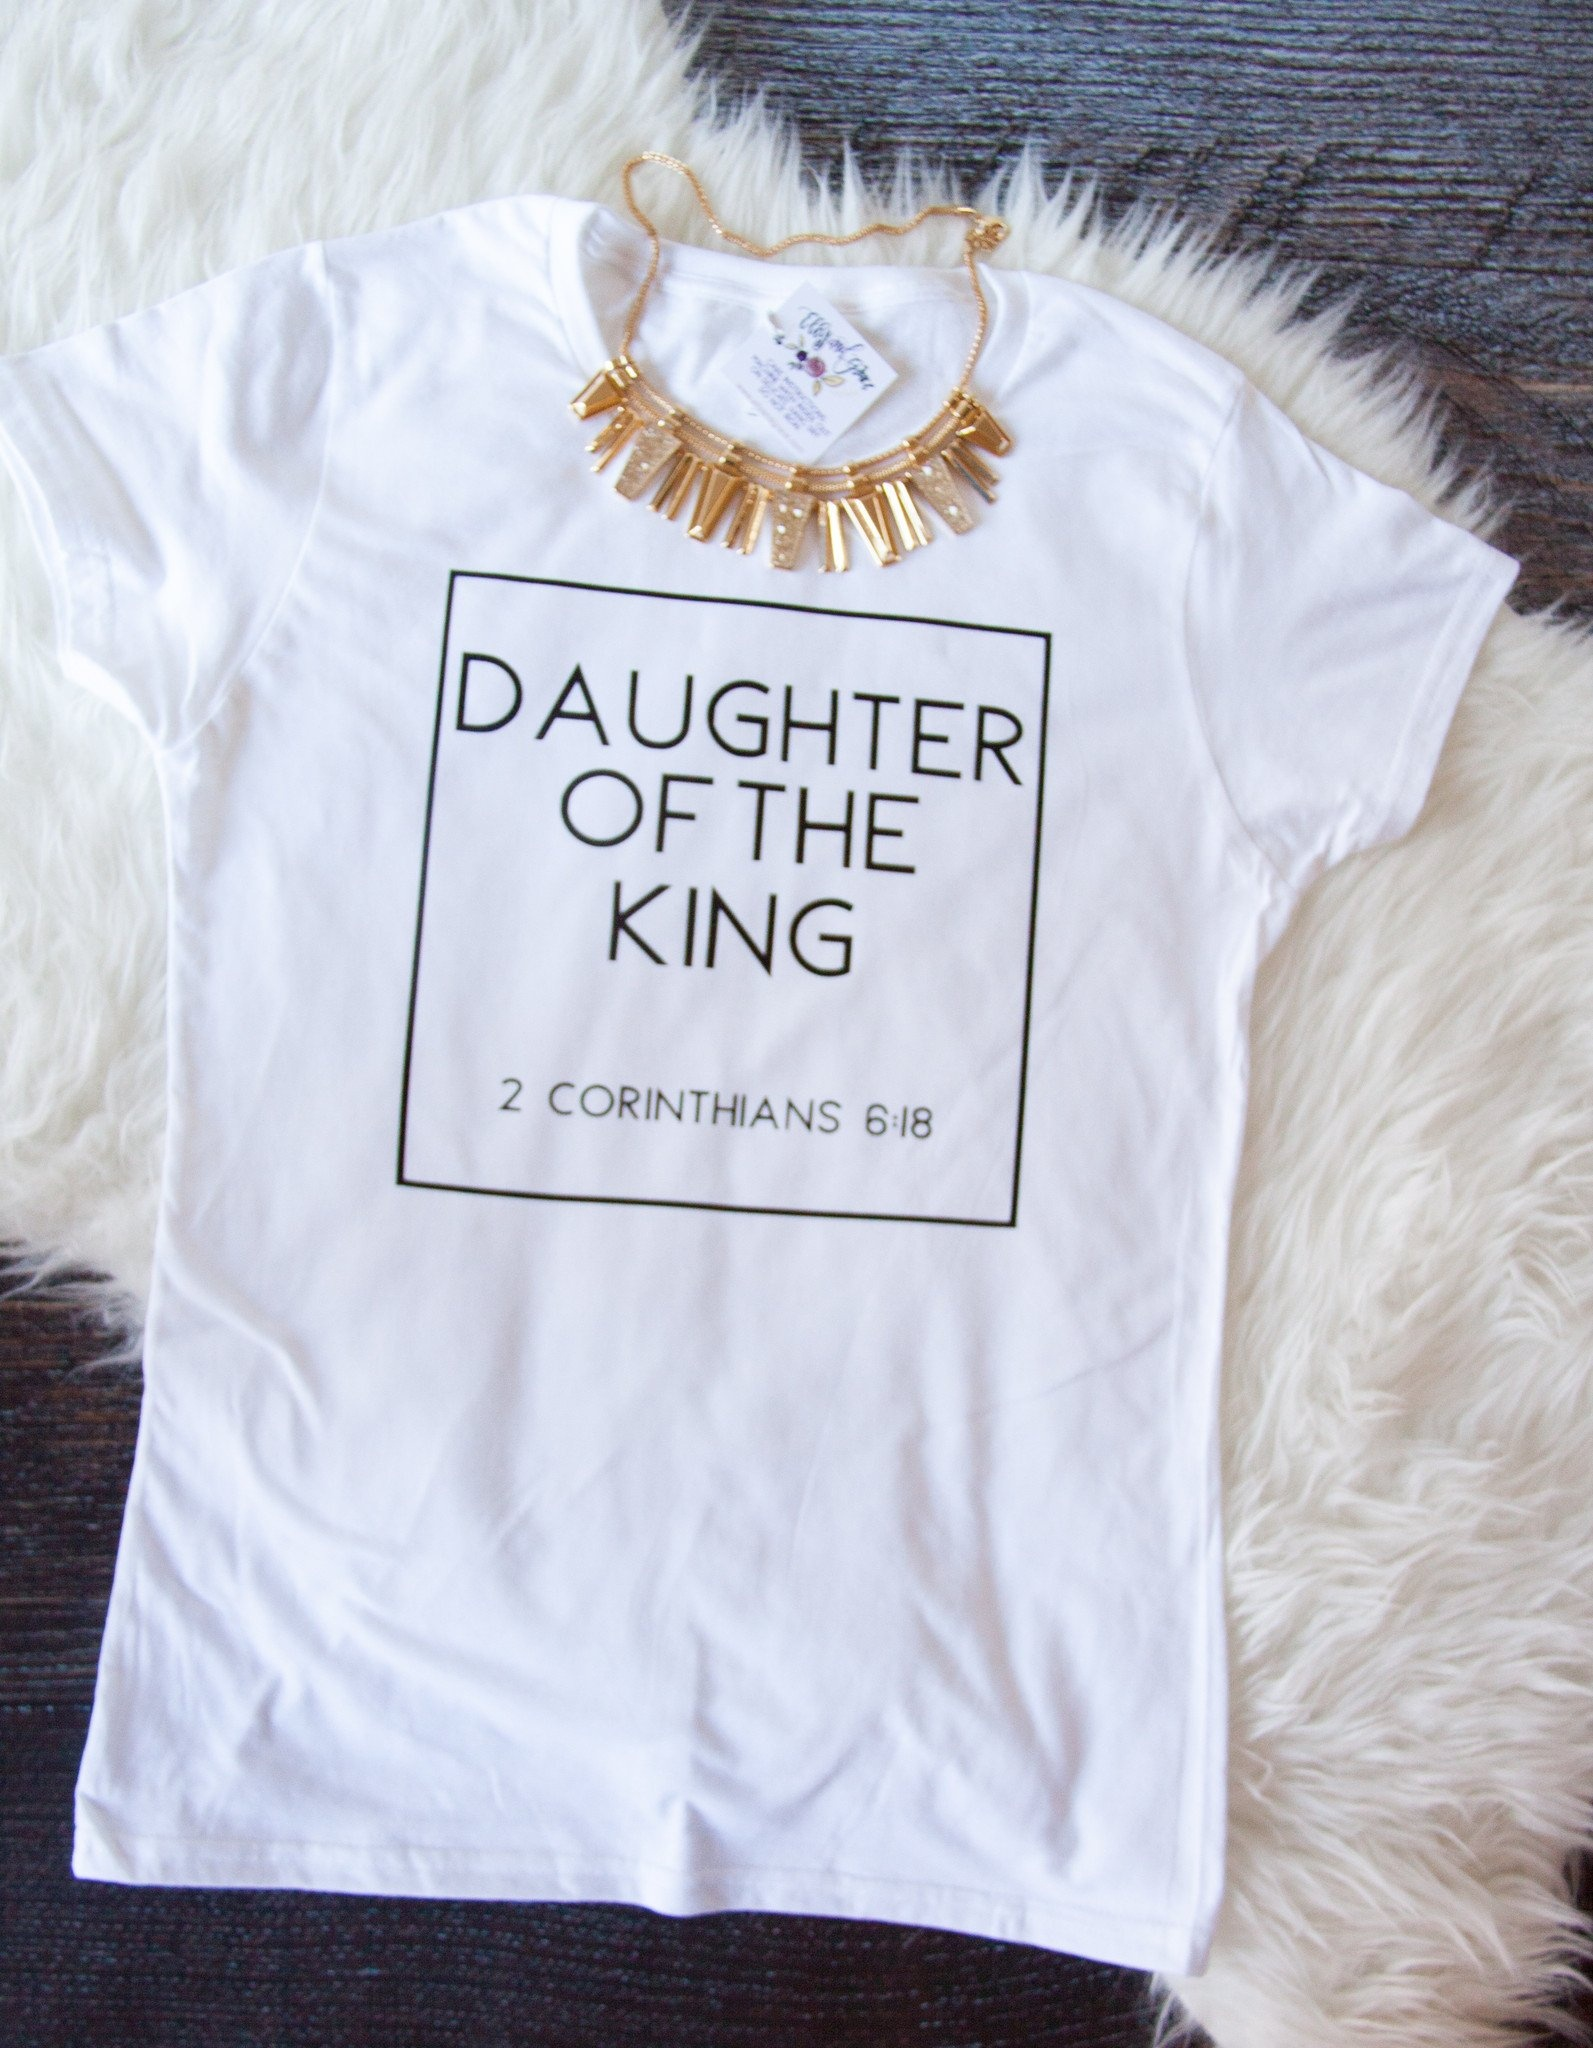 US $10.5 |PUDO JBH Corinthians 6 Daughter Of the King Christian T Shirt  Women Holly Bible Quotes Cute Graphic Tee Casual White Tops-in T-Shirts  from ...